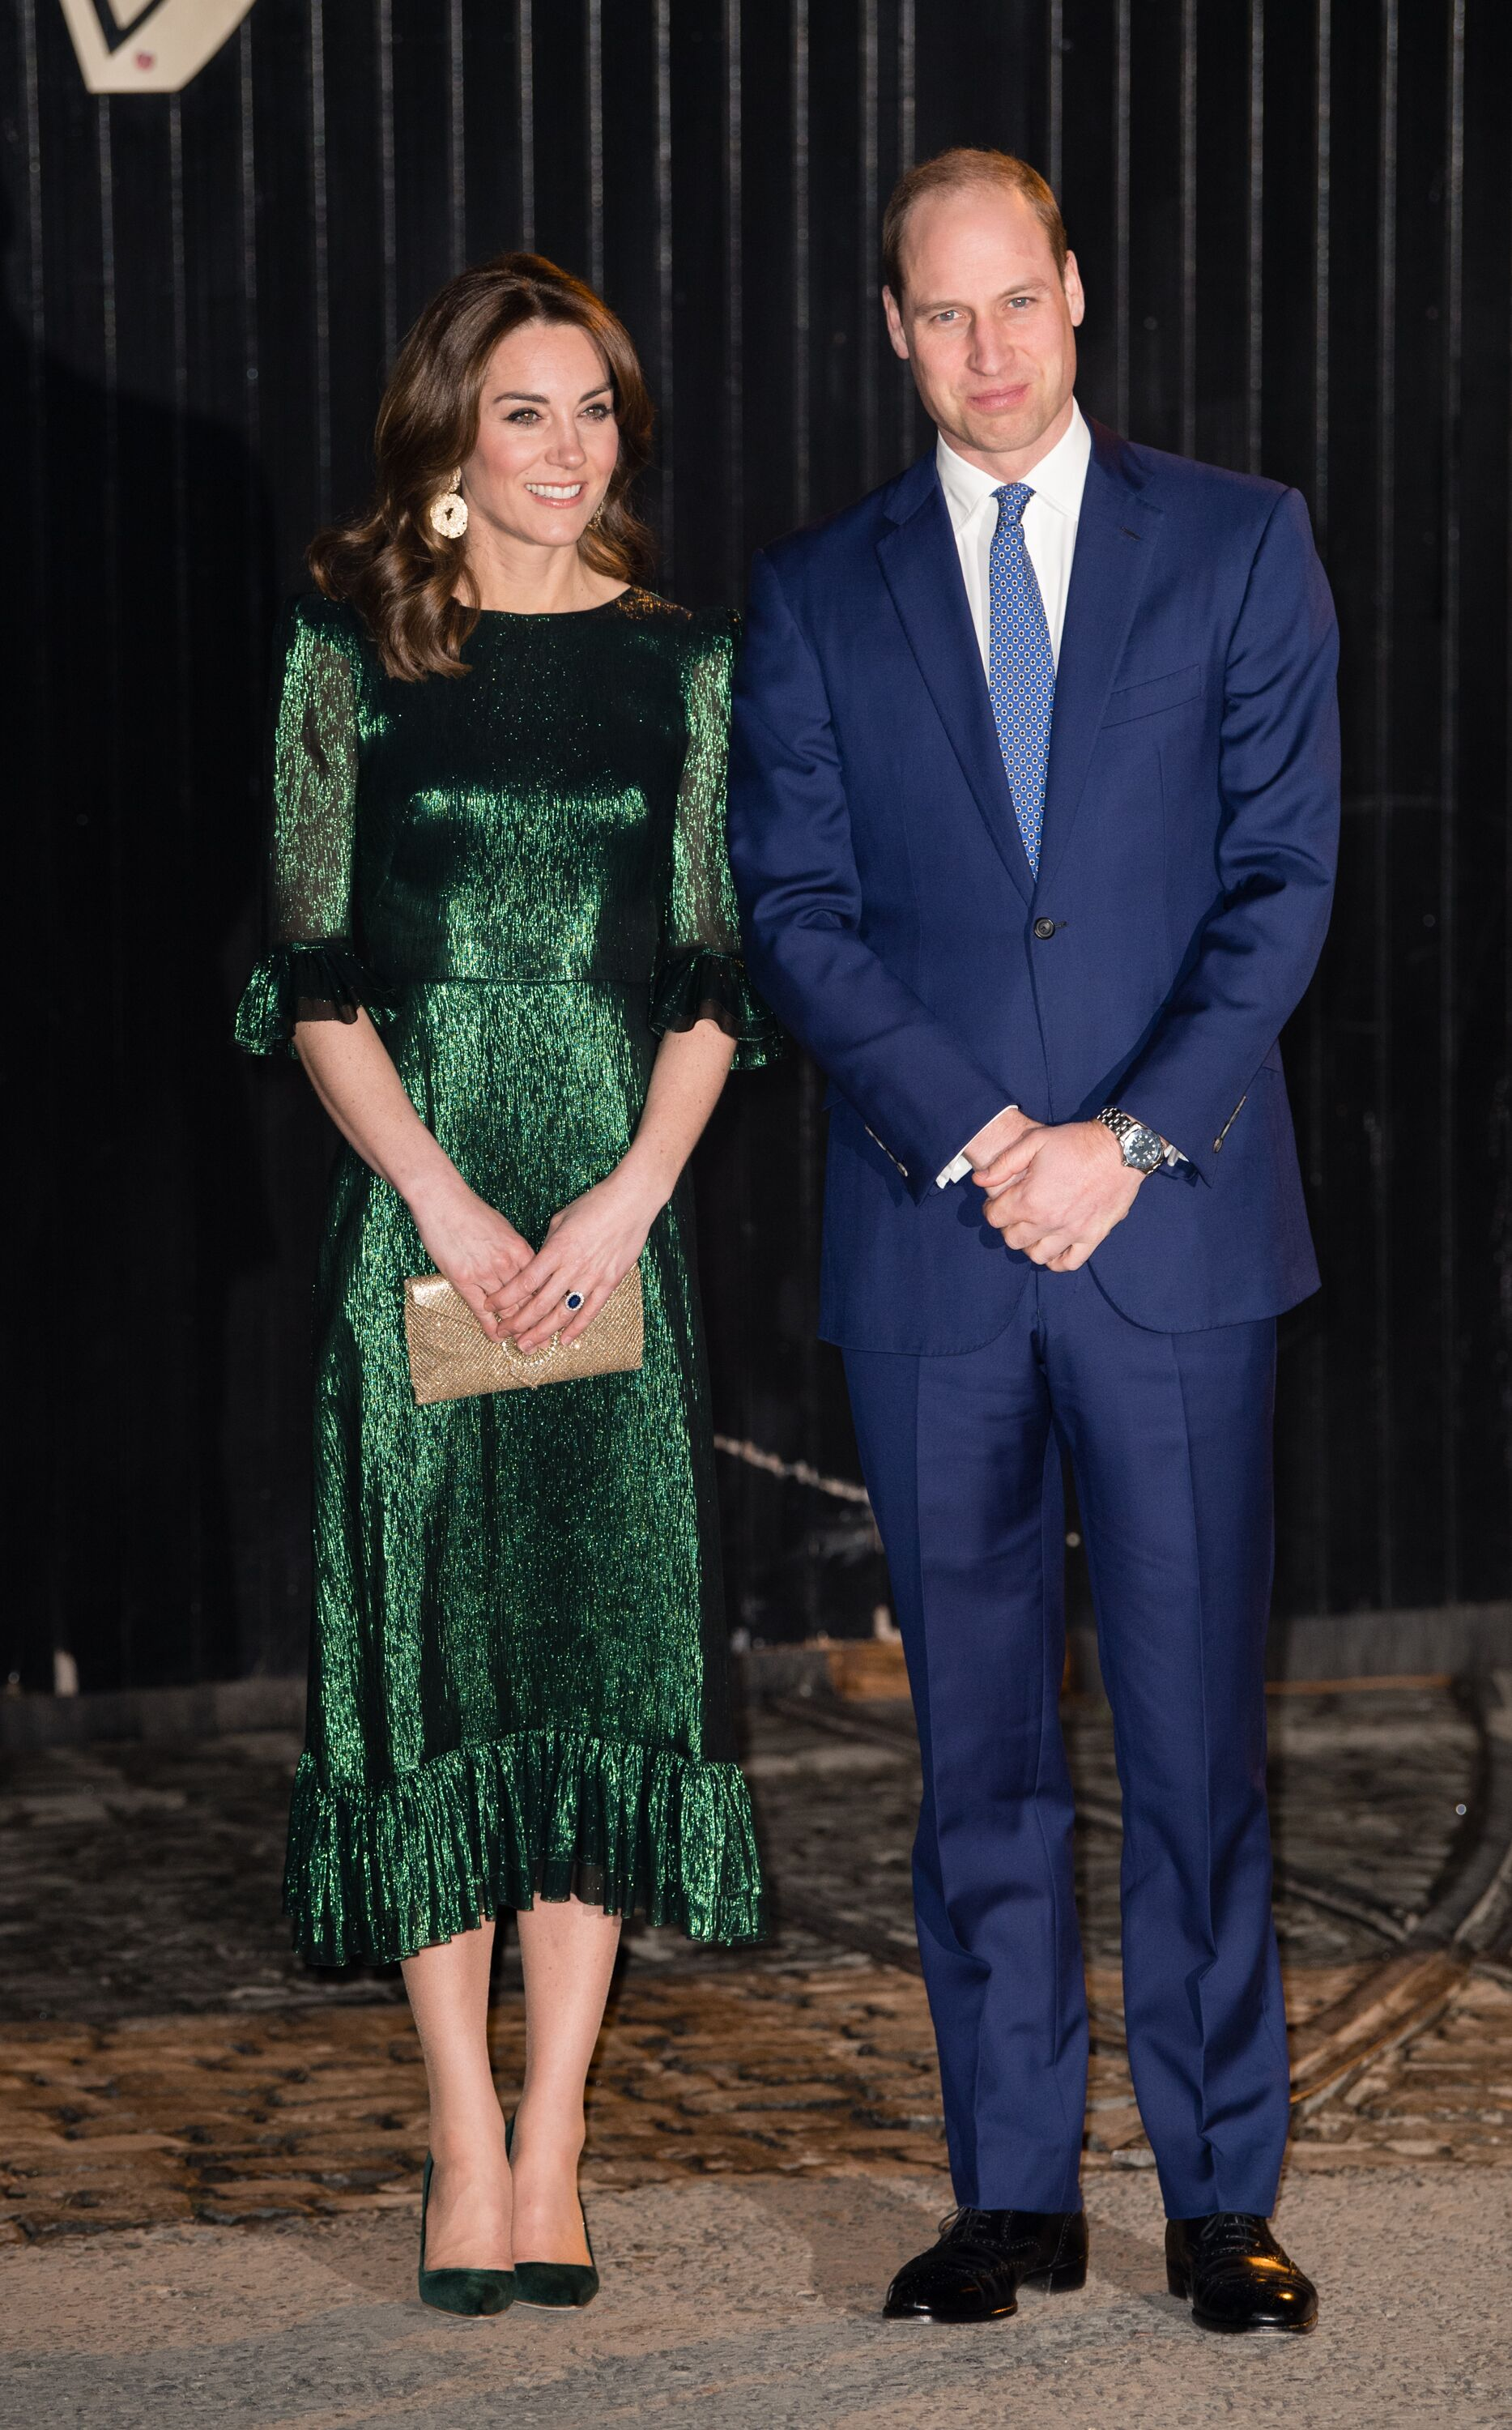 Kate Middleton and Prince William arrive at the Guinness Storehouse's Gravity Bar during day one of their visit to Ireland on March 03, 2020 in Dublin, Ireland. | Source: Getty Images